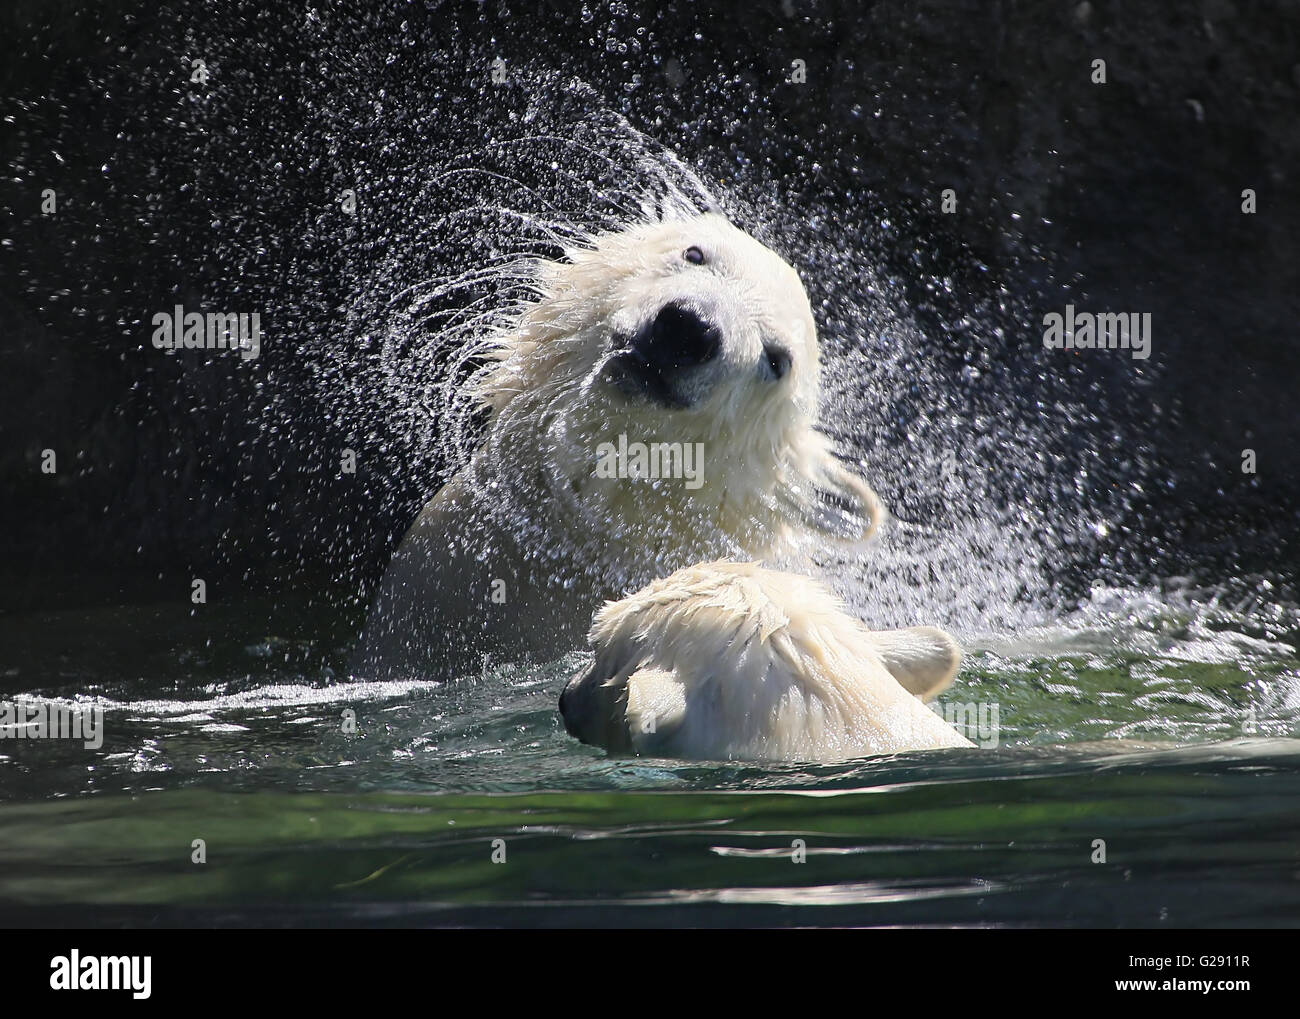 Polar bear cub (Ursus maritimus) shaking off the excess water from his fur, creating a swirl of water droplets - Stock Image